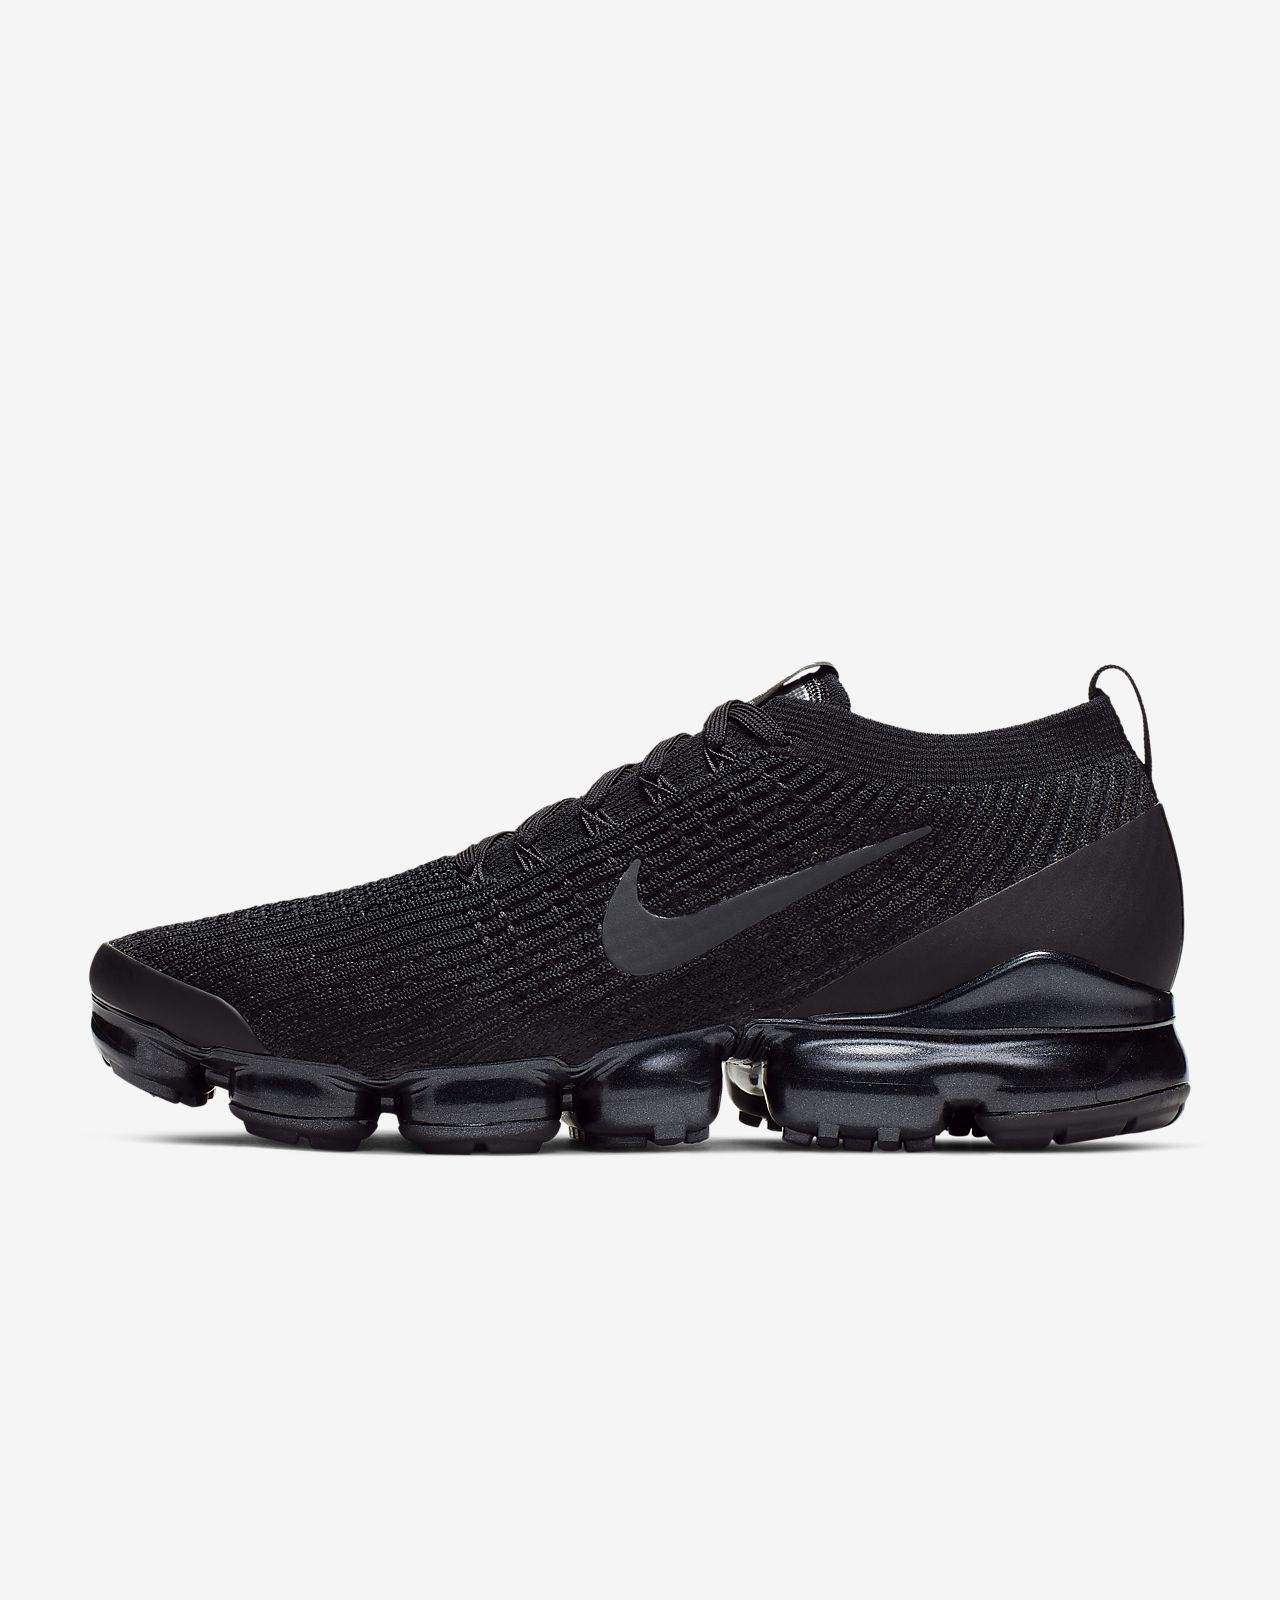 Nike Flyknit Air Chaussure Vapormax 3 Pour Homme CdxorBeW